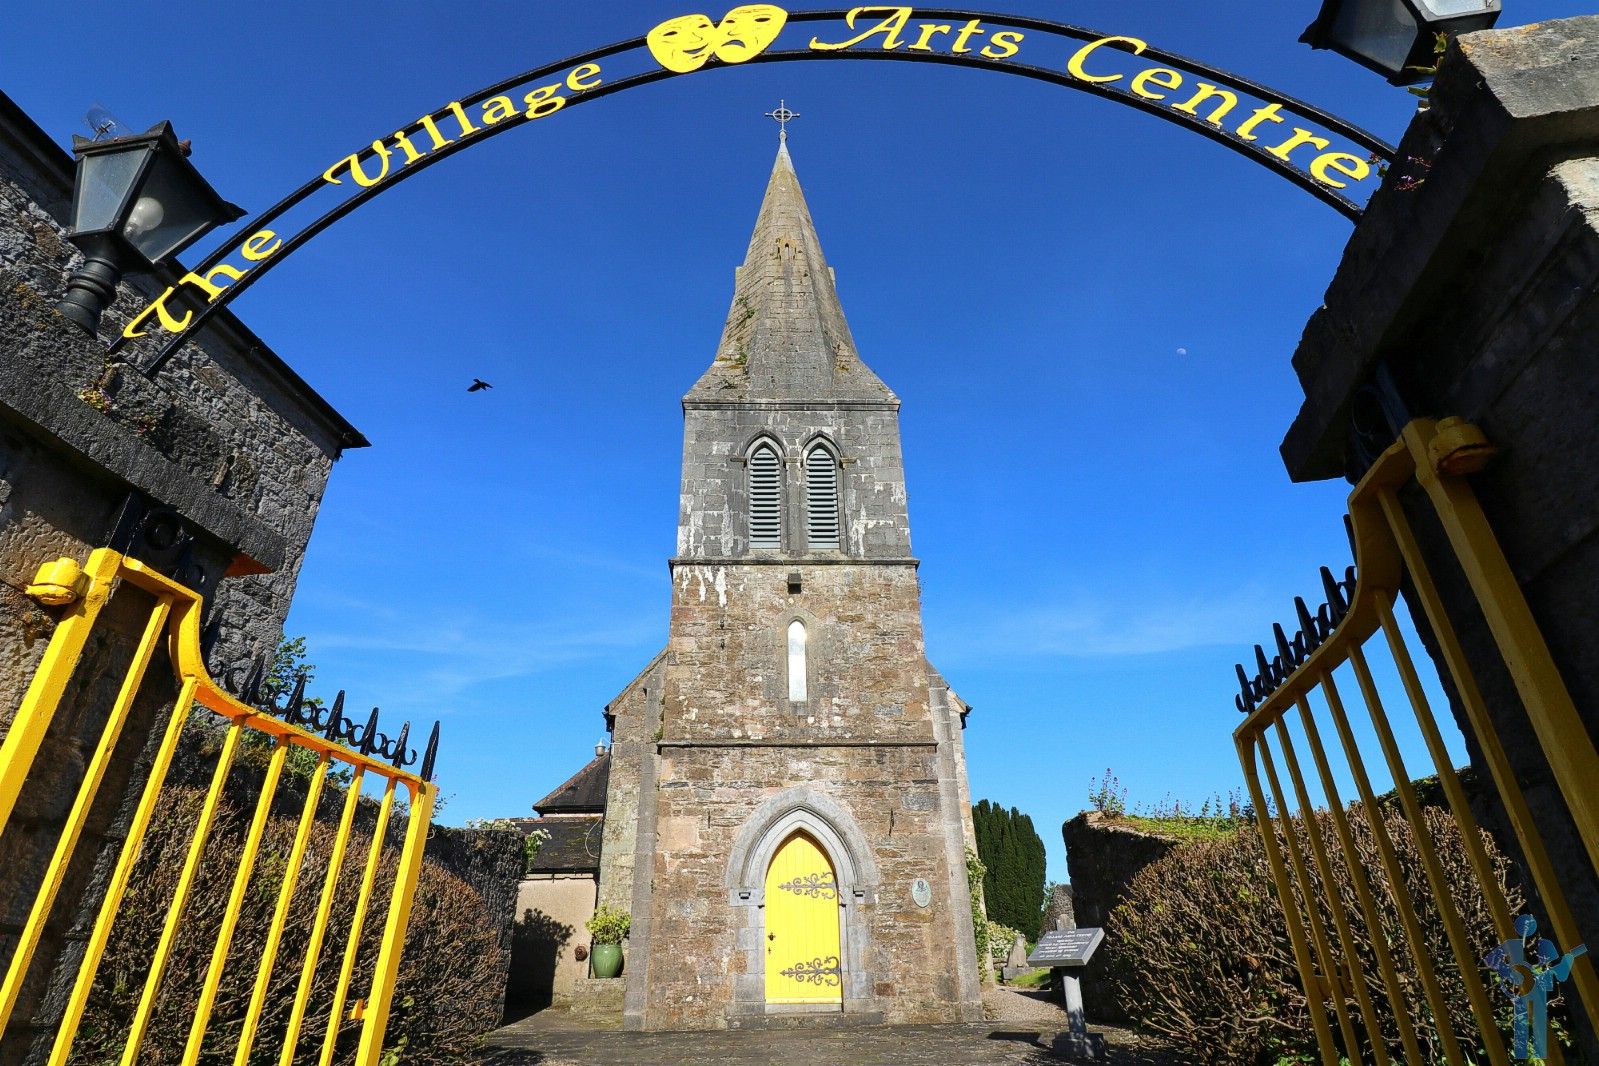 A musician's favourite, & the 2nd of 6 churches. The Village Arts Centre, Kilworth, Co. Cork. May 13, 2019.